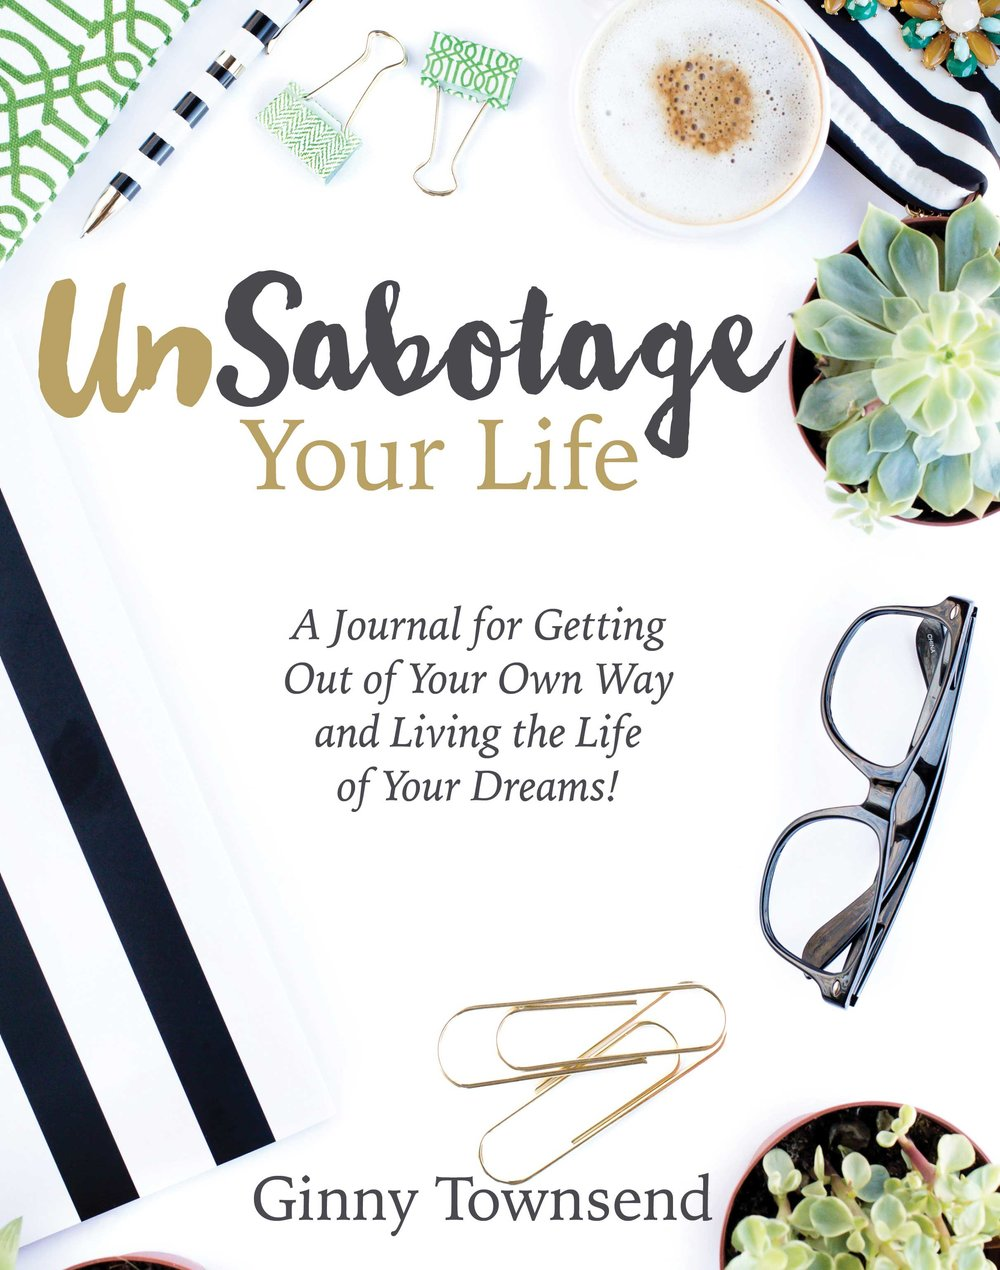 UnSabotage your life: A journal for getting out of your own way and living the life of your dreams!